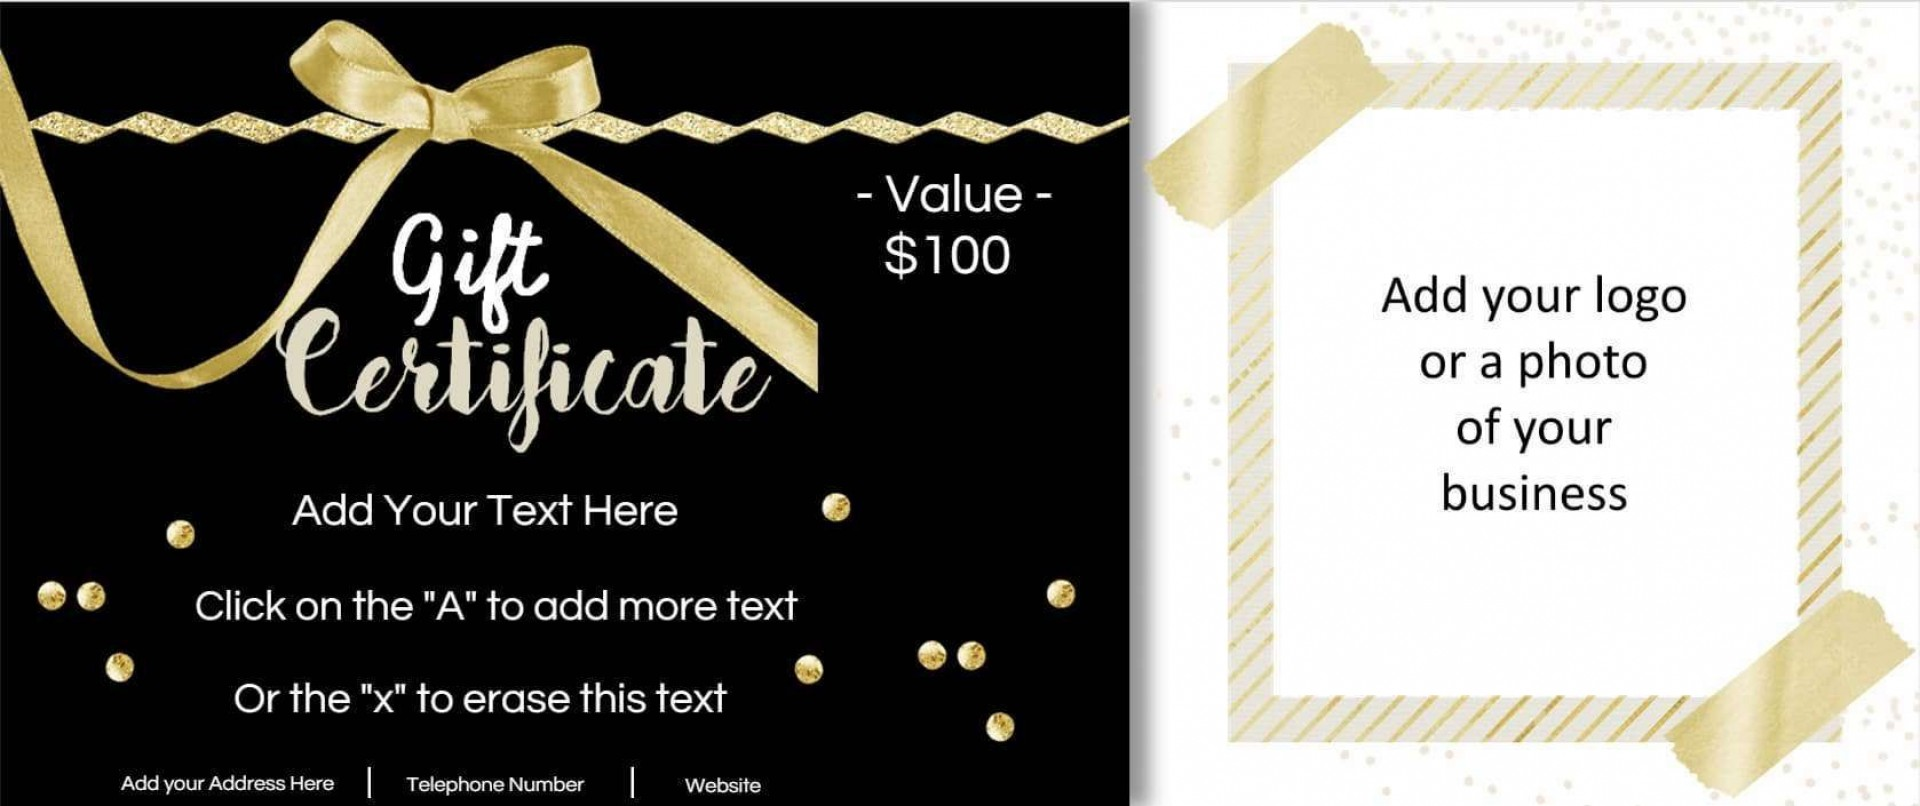 001 Stupendou Free Template For Gift Certificate Image  Printable Birthday Mac In Word1920